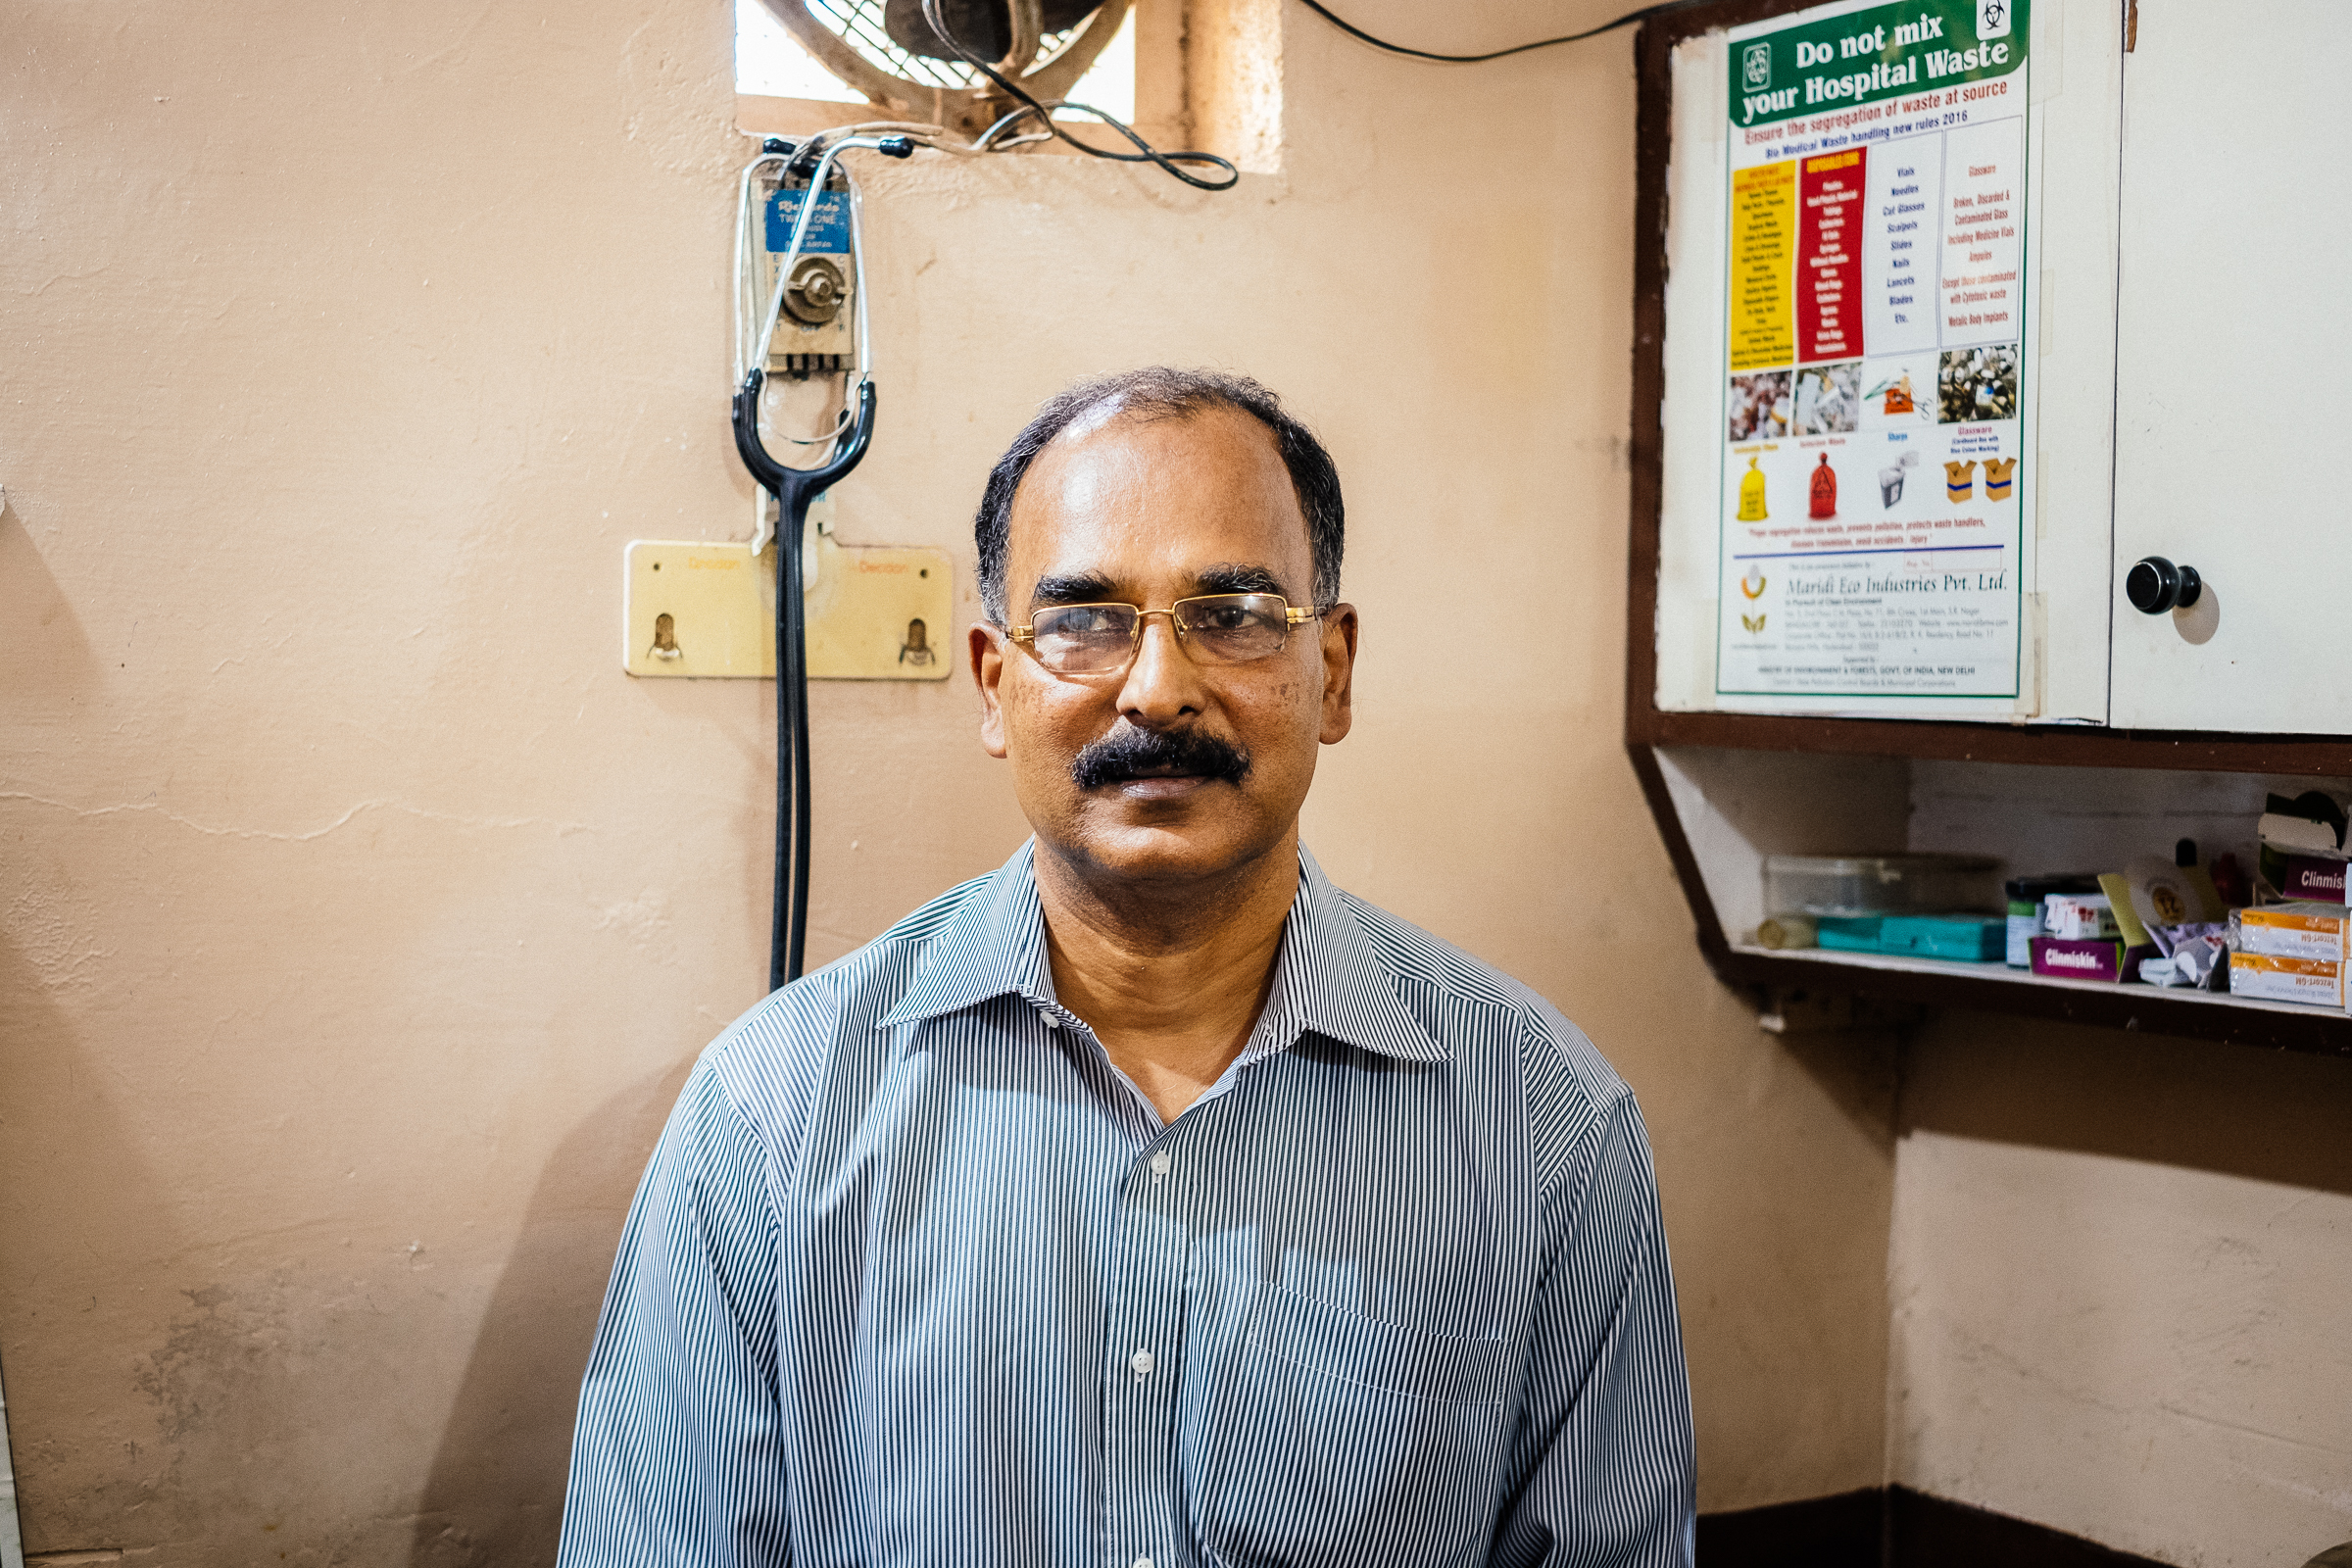 Highlights from our interview and observation session with Dr Shaurya, a registered medical practitioner running his own private clinic in Bangalore.